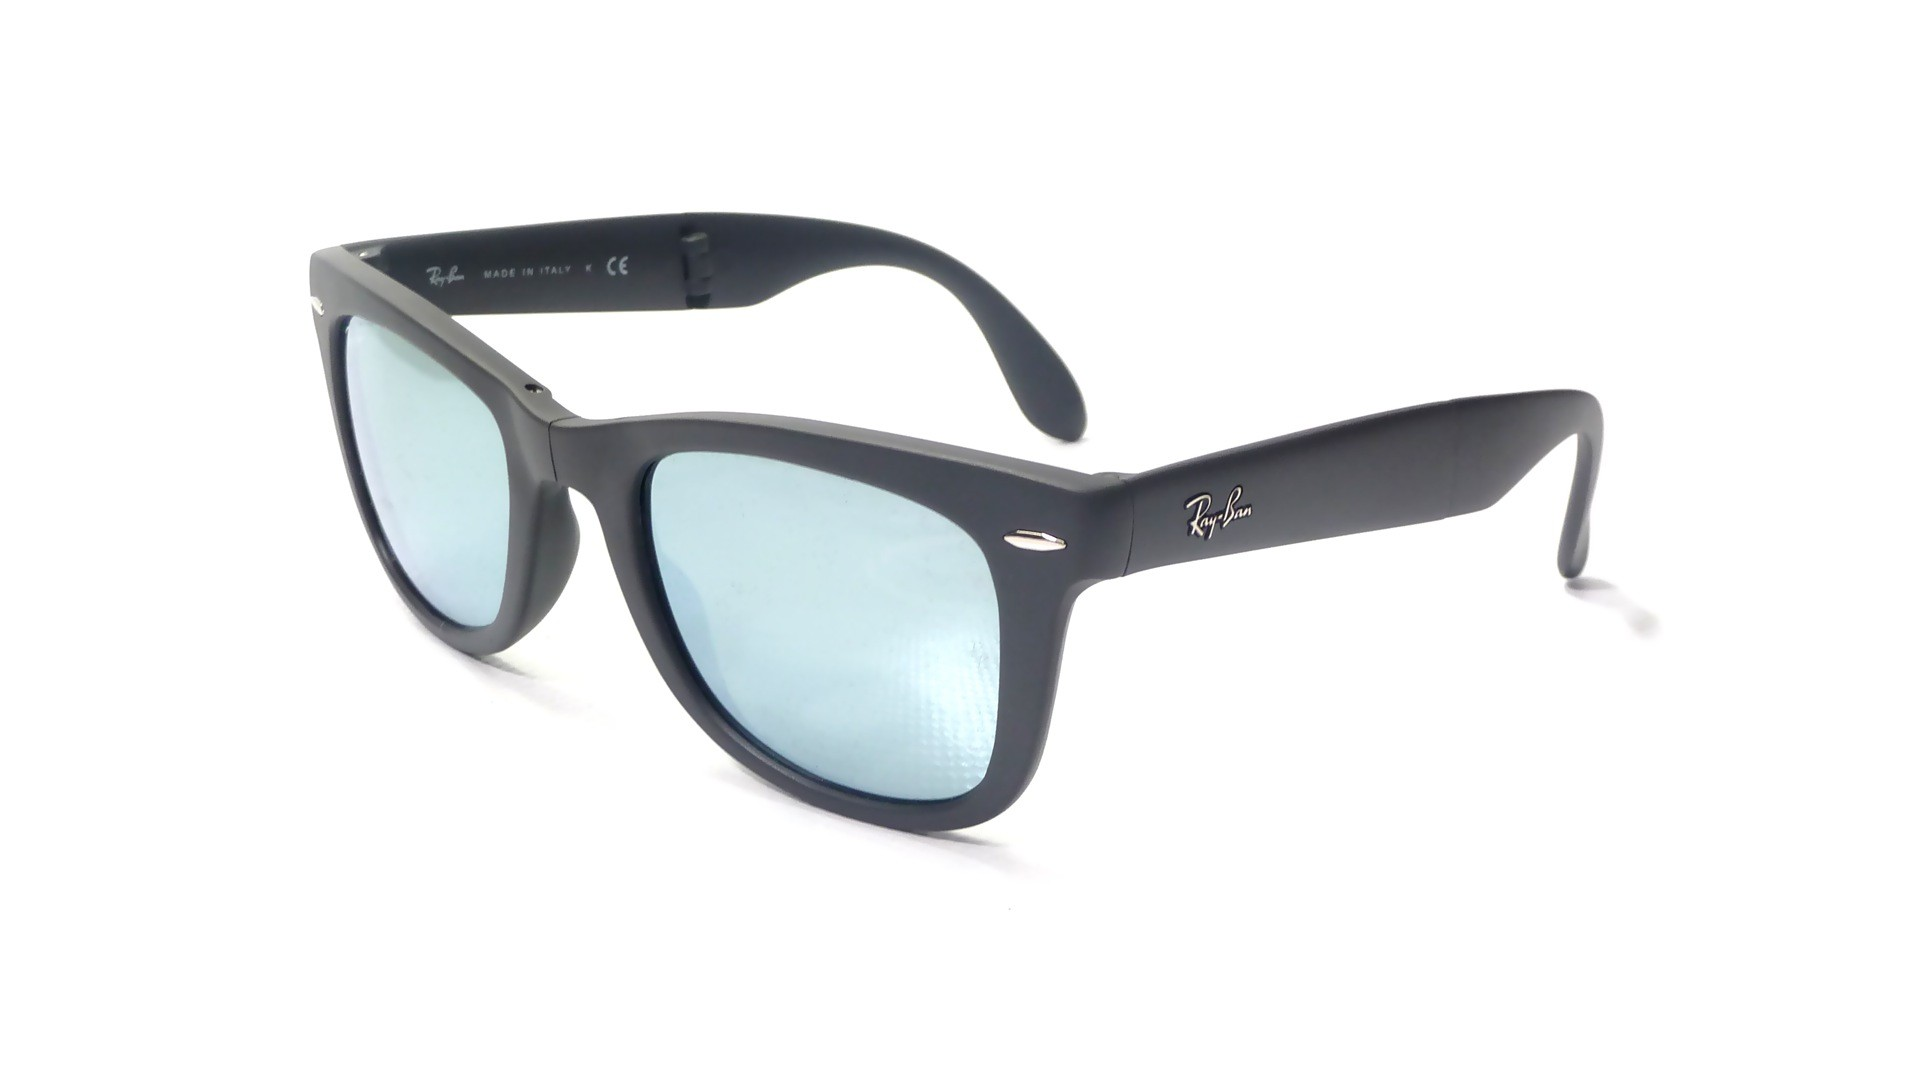 7d45888cd4 Foldable Ray Ban Wayfarer Case « Heritage Malta